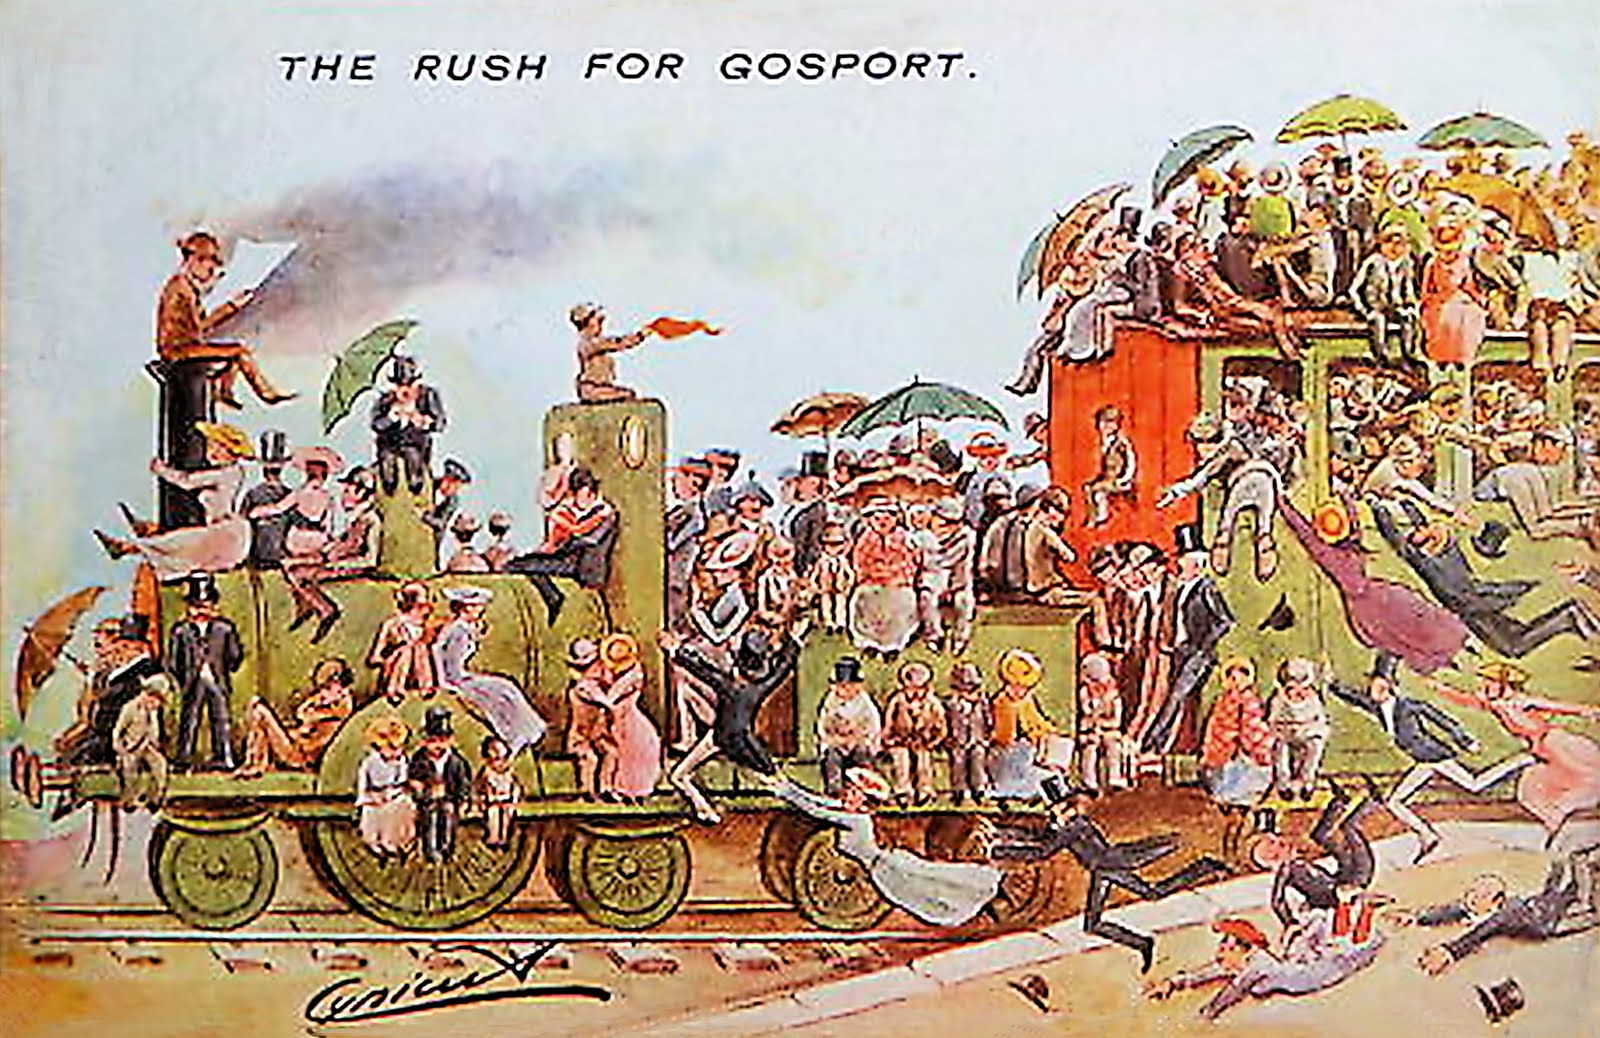 The Rush to Gosport